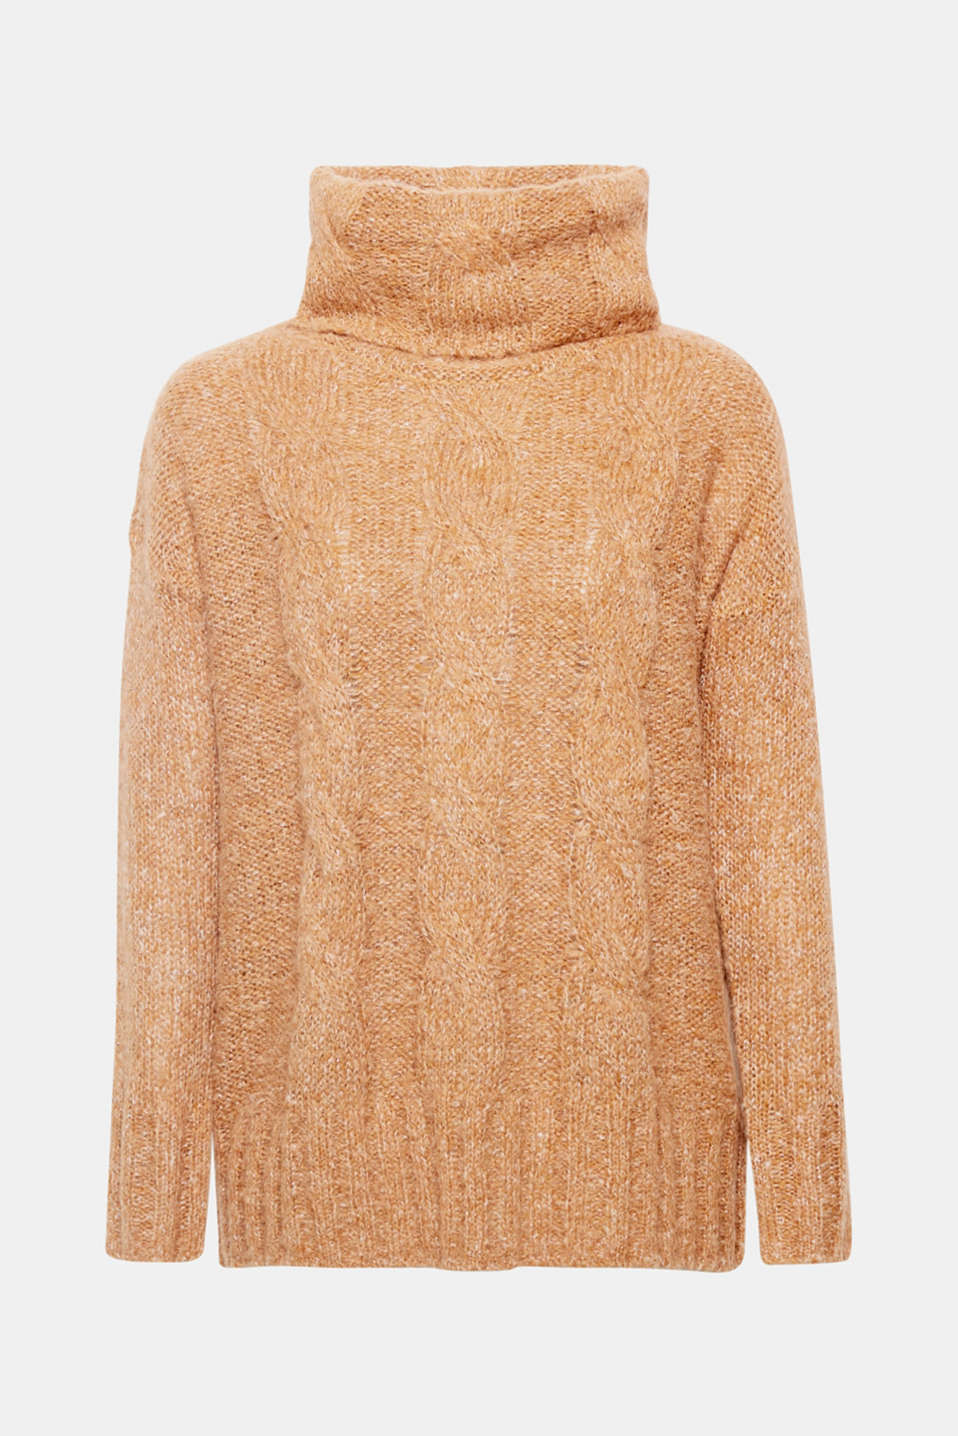 Cosy favourite autumn piece: The loose stitching, decorative cables and fine glitter effects make this oversized jumper a hot commodity!